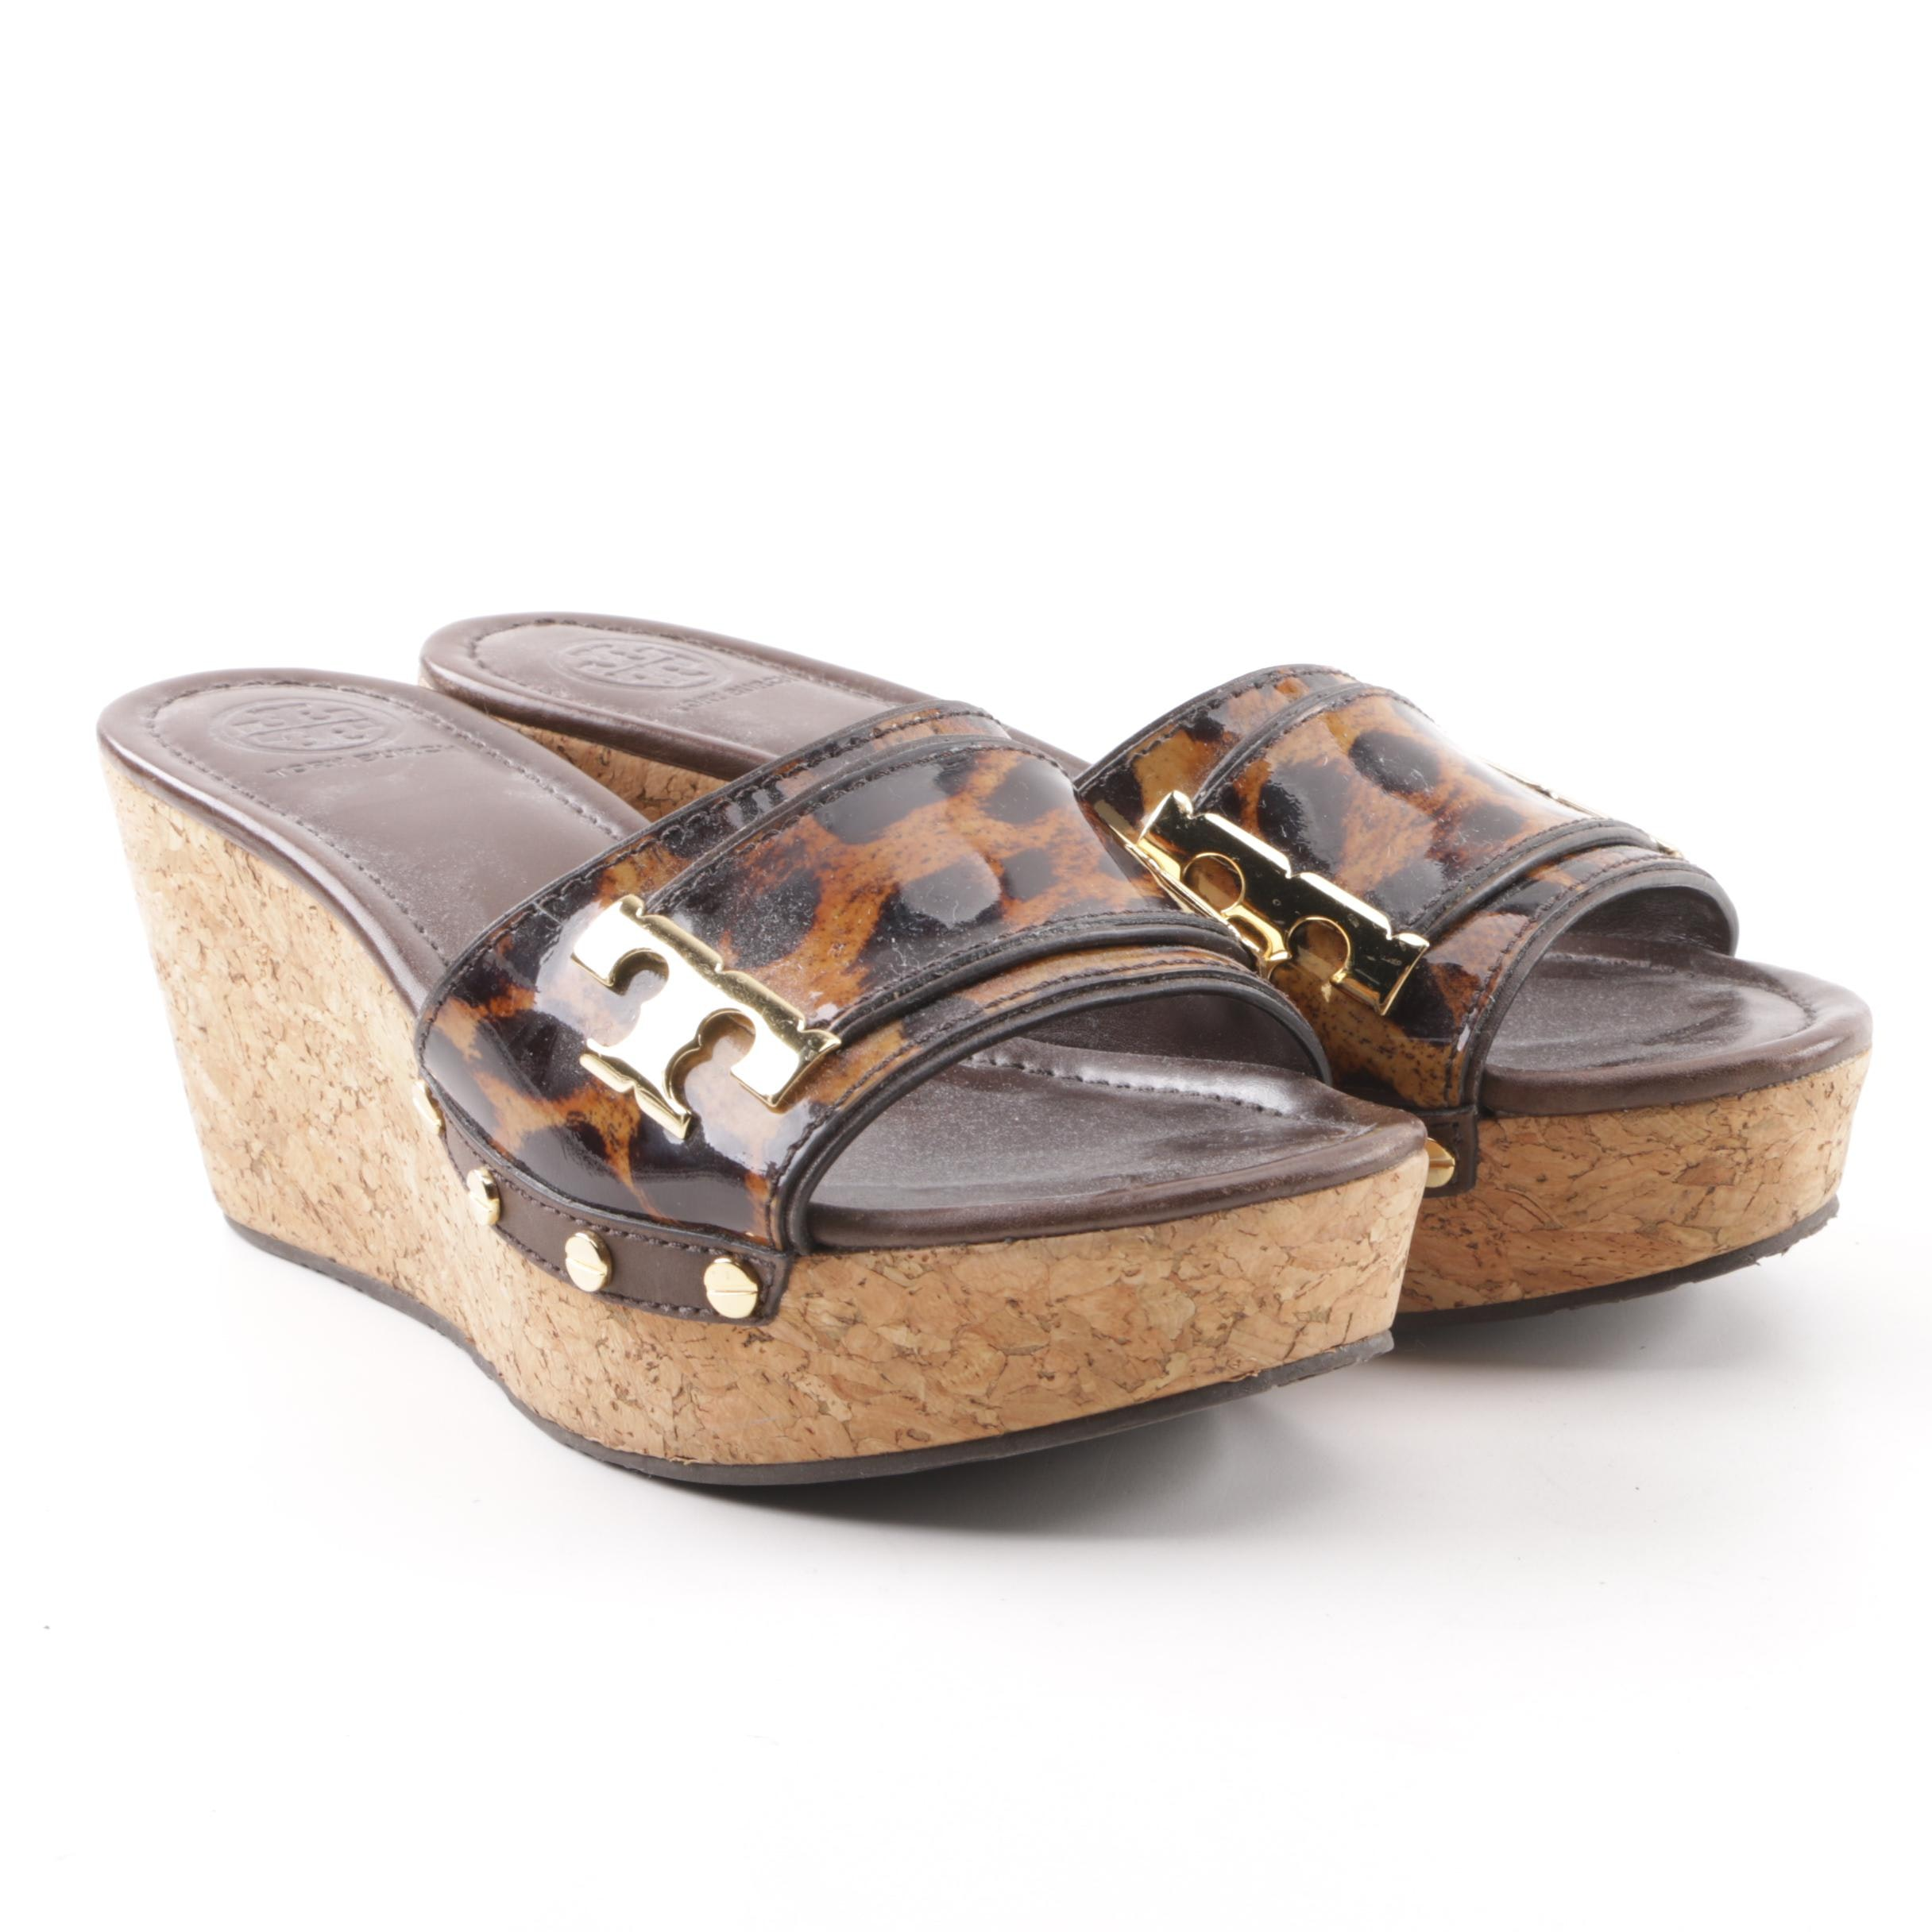 Tory Burch Animal Print Patent Leather Slide Wedges